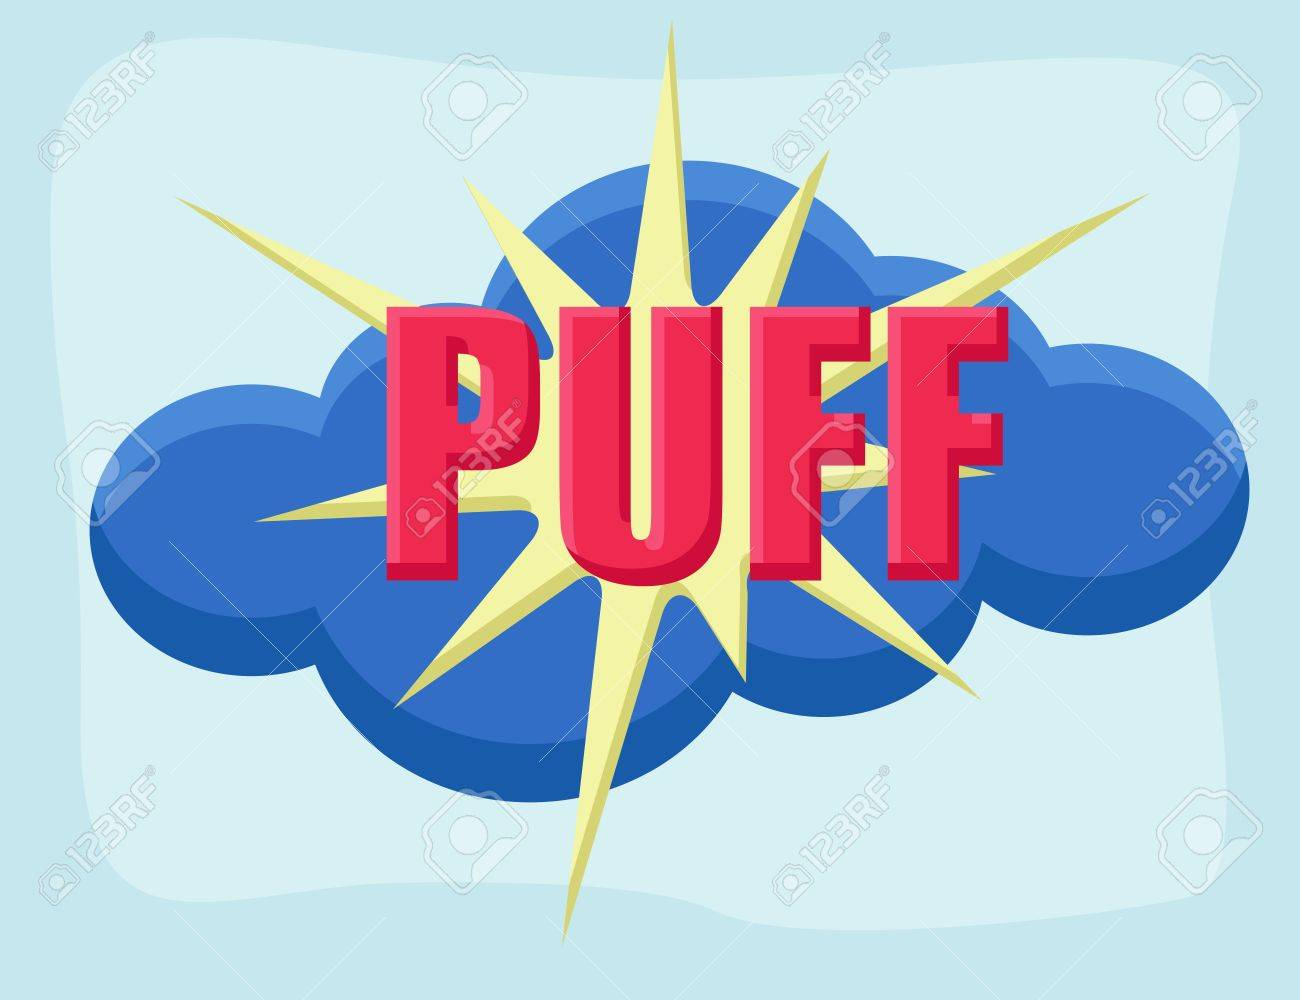 Puff - Comic Cartoon Background Vector Stock Vector - 22318654